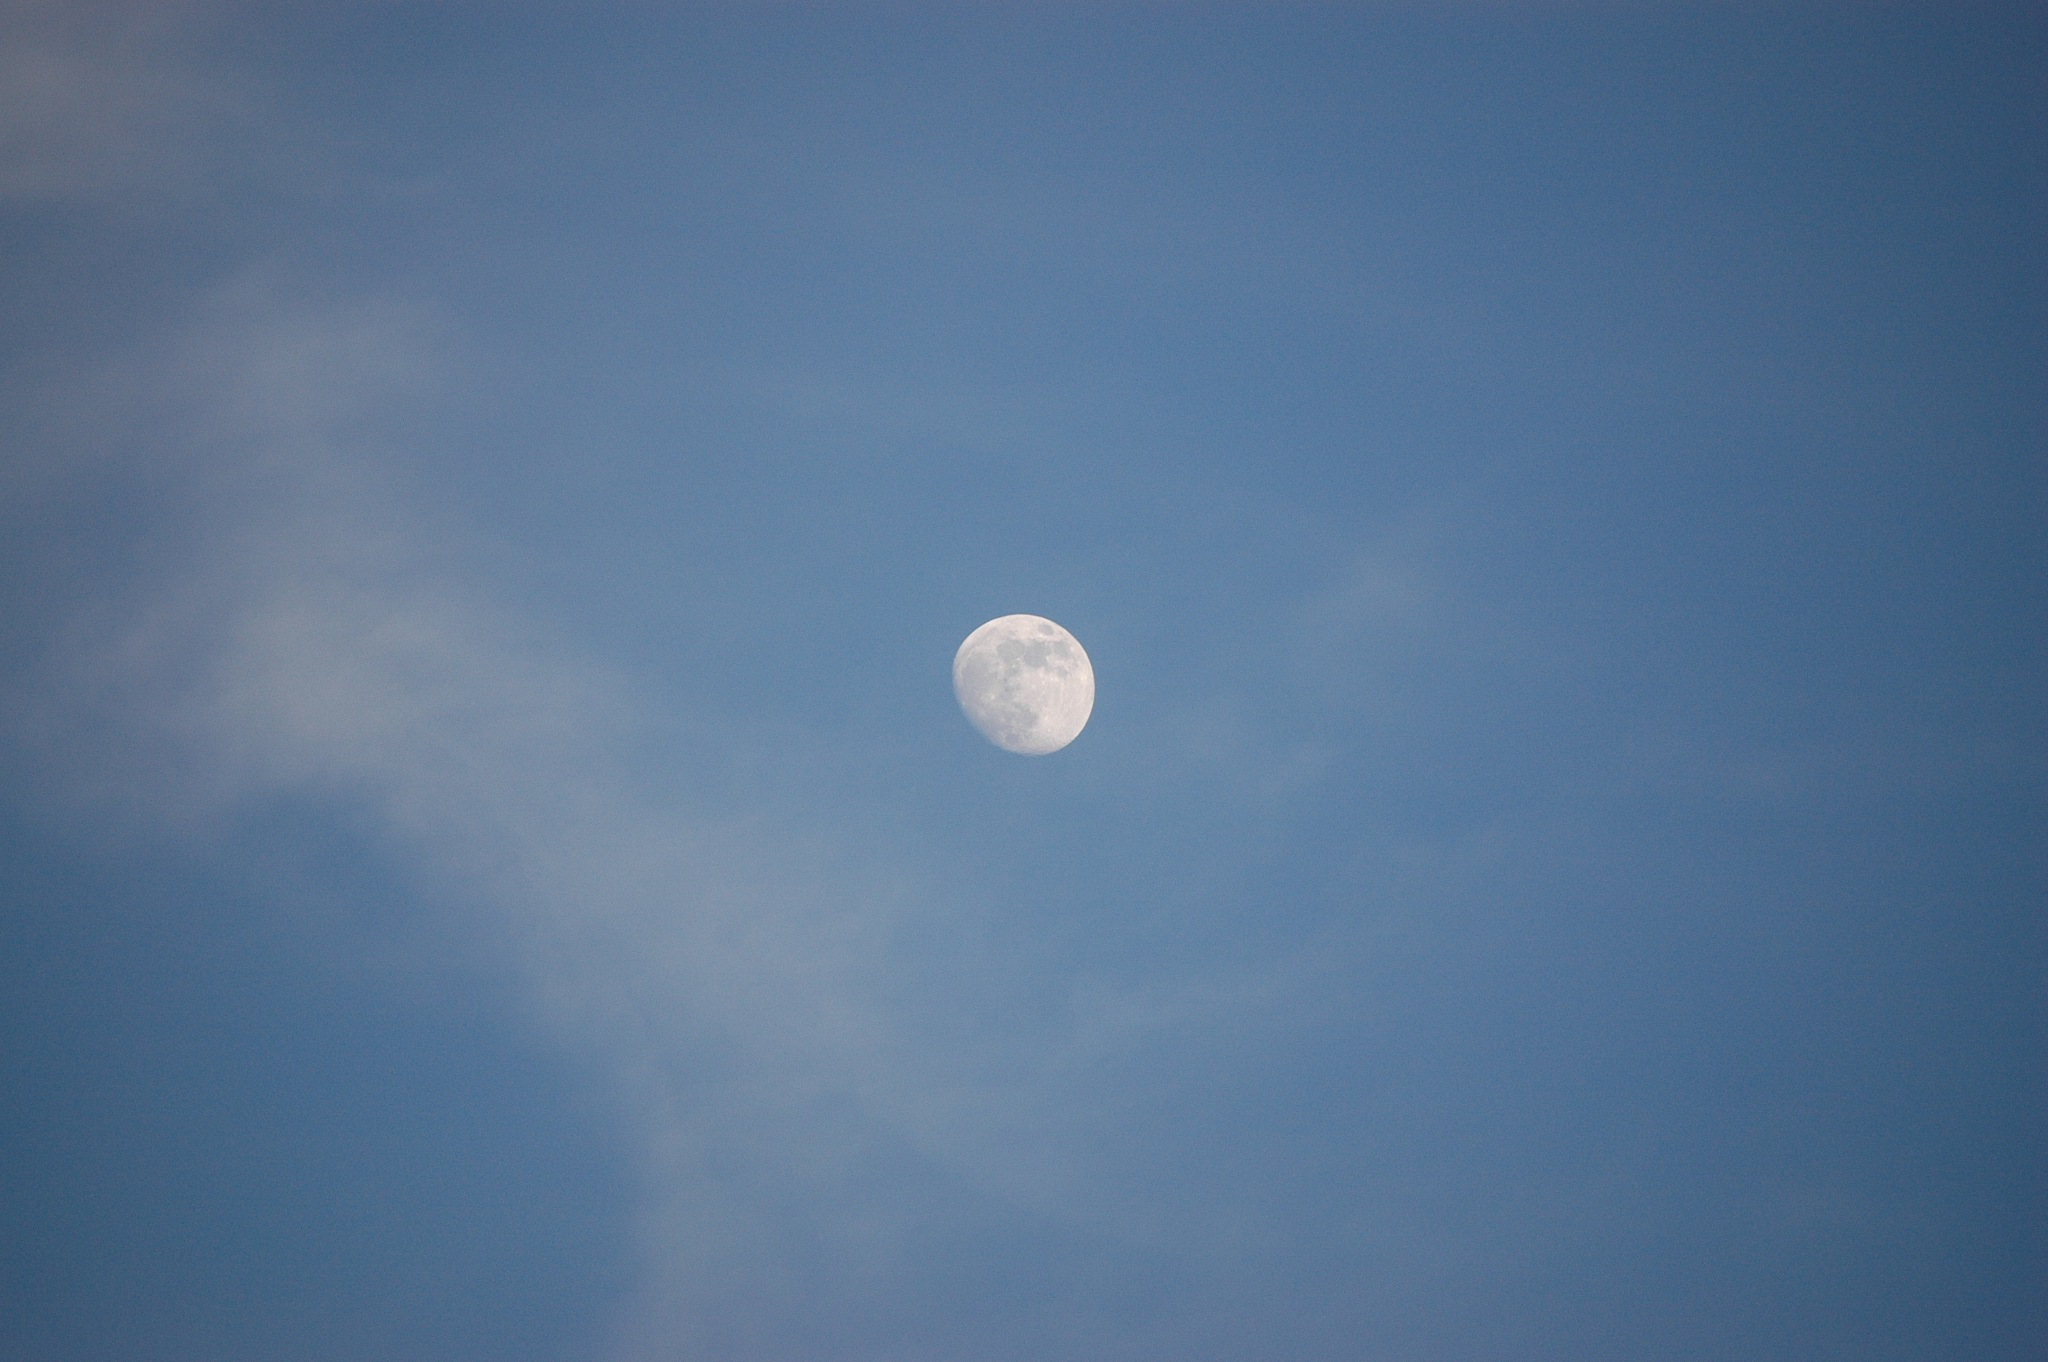 Moon by audhild26